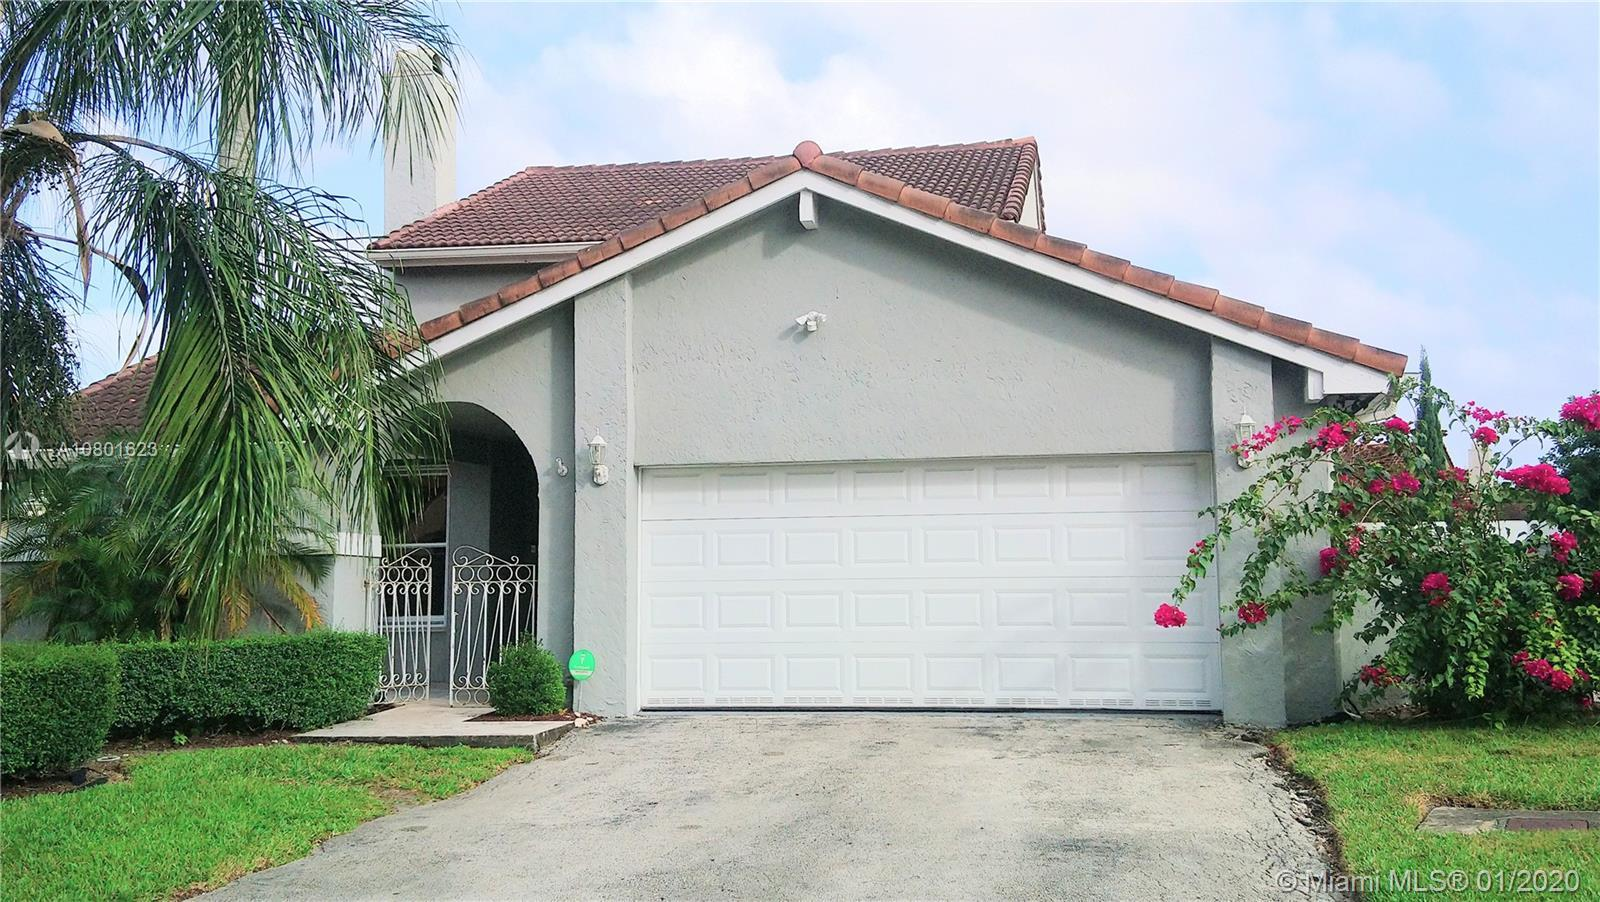 THE PERFECT  POOL HOME IN THE MOORS IN MIAMI LAKES! 100% REMODELED!  4 BEDROOM 2 1/2 BATH DREAM HOME